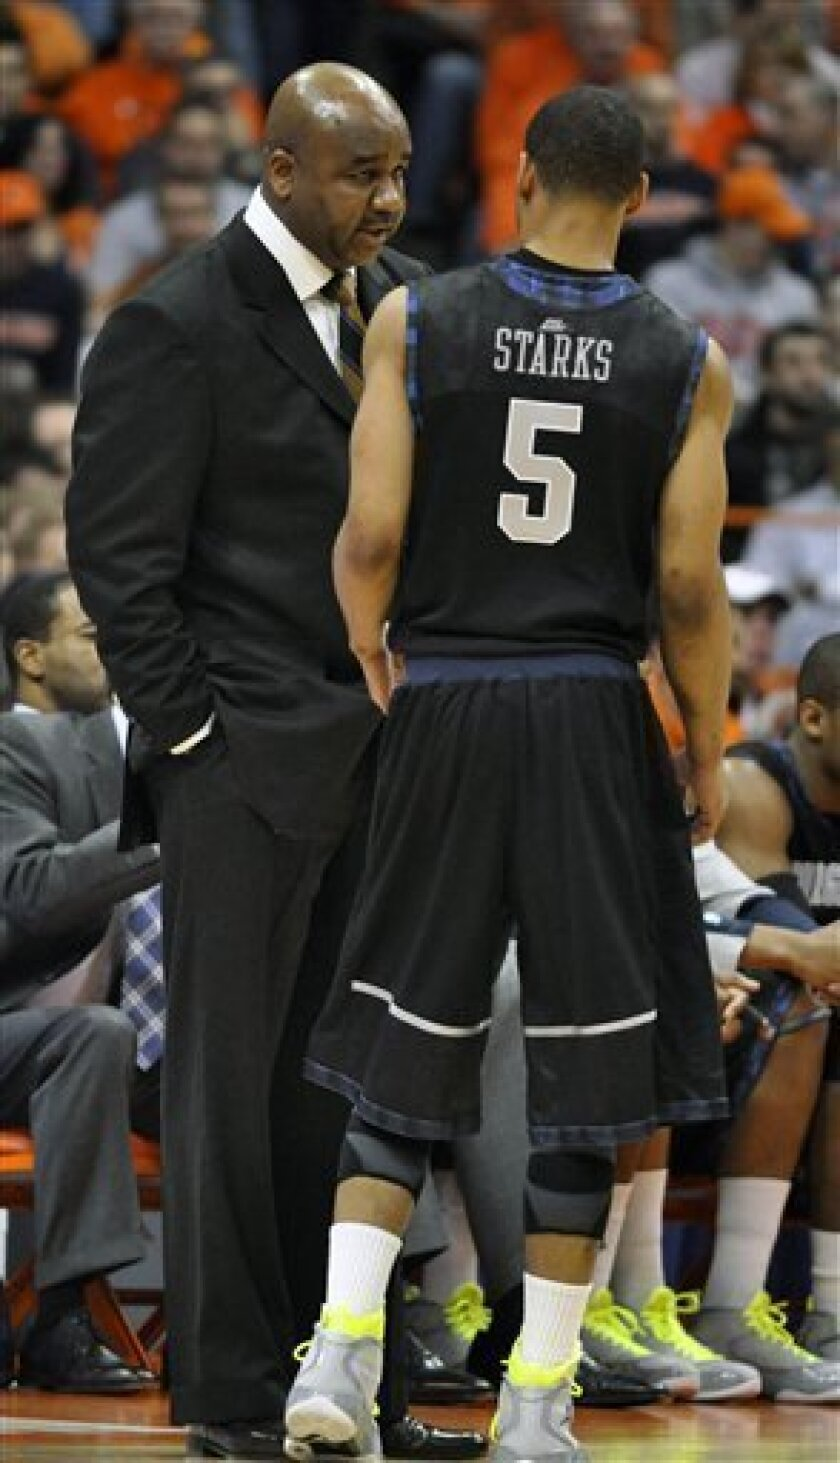 Georgetown head coach John Thompson III, left, talks with Markel Starks during the first half of an NCAA college basketball game against Syracuse in Syracuse, N.Y., Wednesday, Feb. 8, 2012. (AP Photo/Kevin Rivoli)